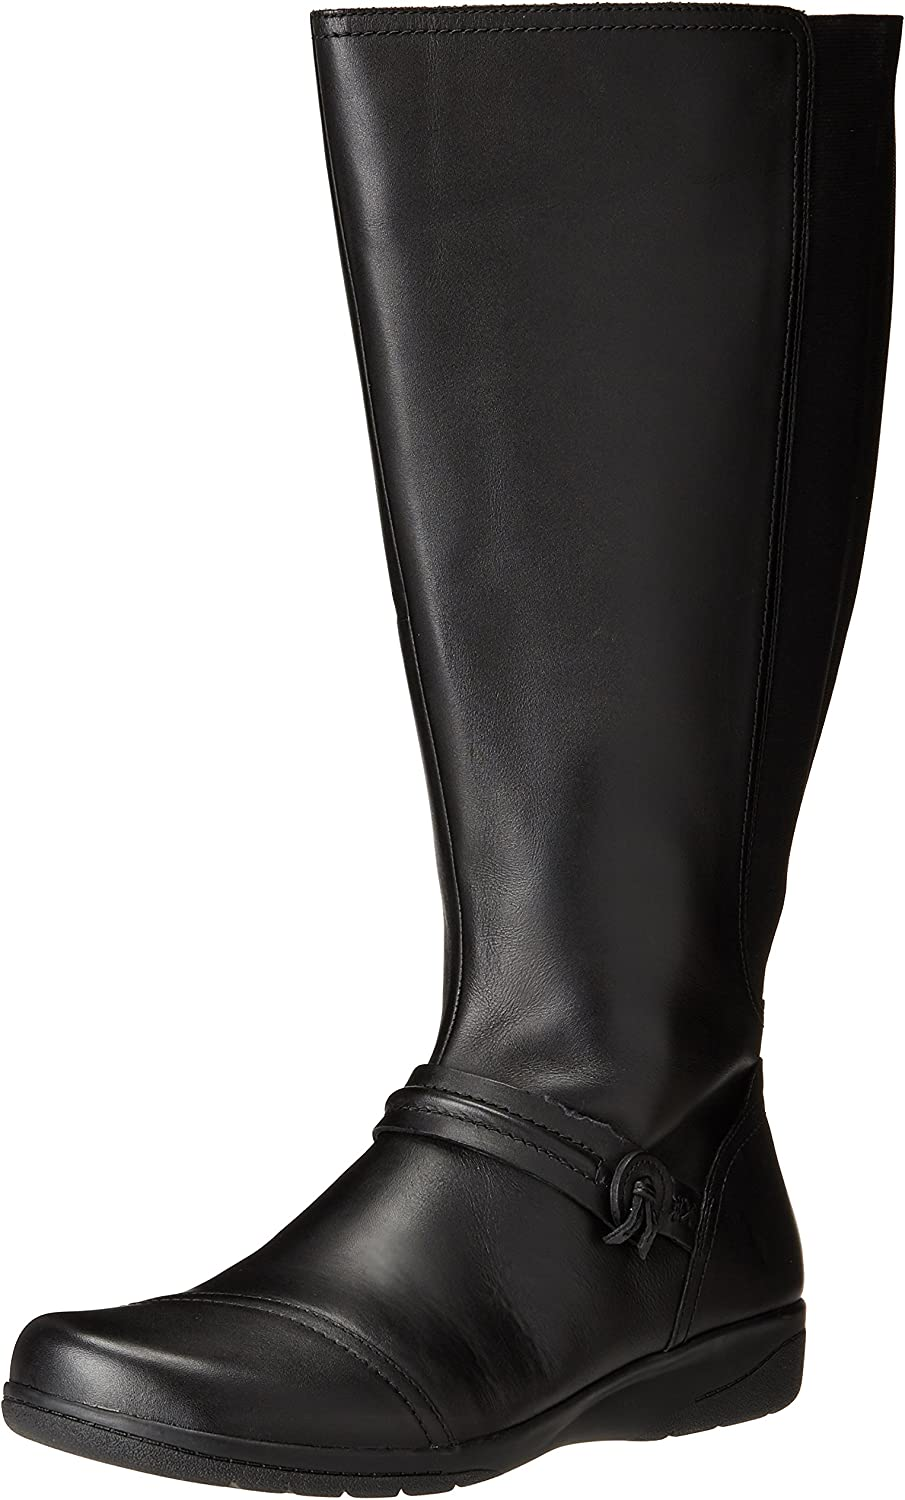 Clarks Women's Cheyn Whisk Wide Calf Knee High Boots